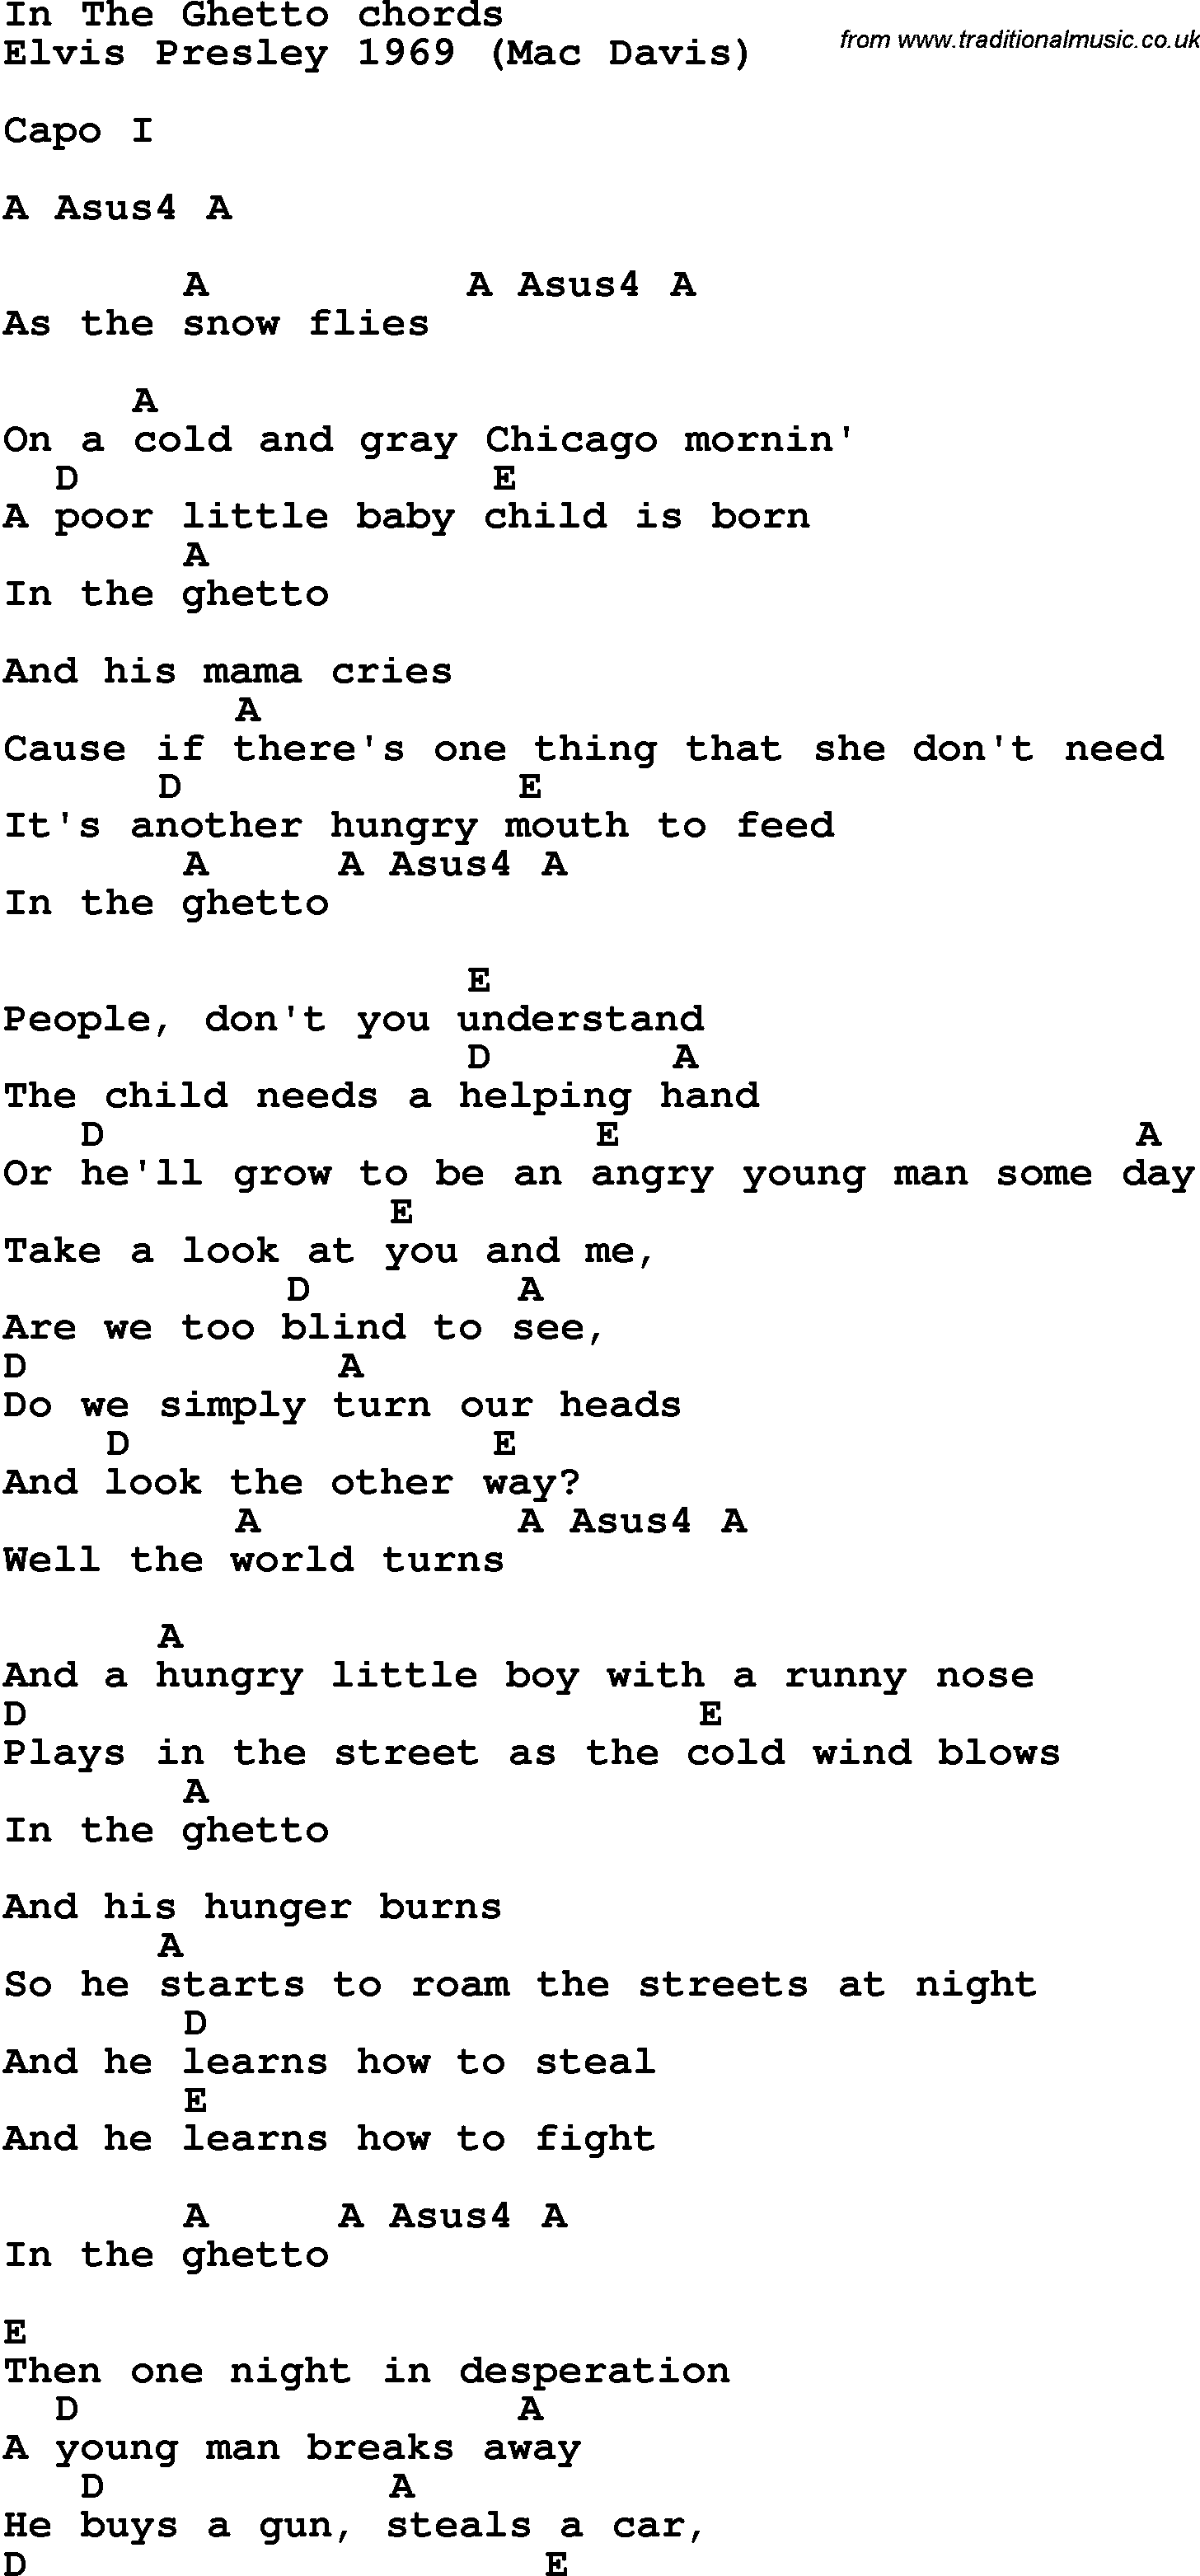 Song Lyrics With Guitar Chords For In The Ghetto Tips For Ukulele